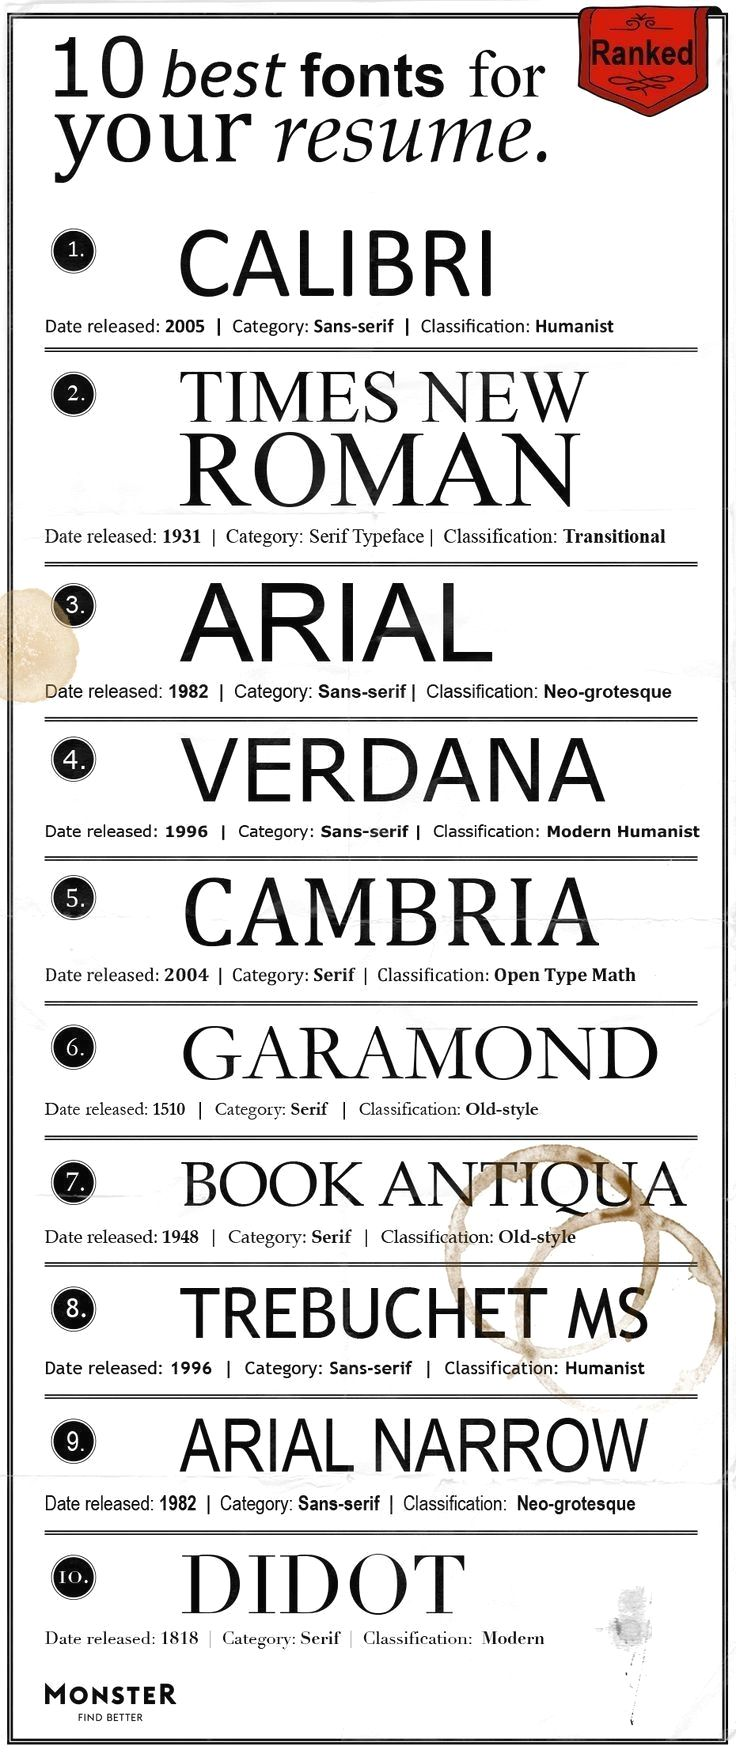 The best fonts for your resume ranked - Resume writing tips, Cover letter for resume, Resume writing, Job resume, Resume, Resume tips - Recruiters take six seconds to decide whether or not to toss your resume, so the right font makes a big difference  If a recruiter can't read your words, or is put off by a funky font, you won't even get a second look